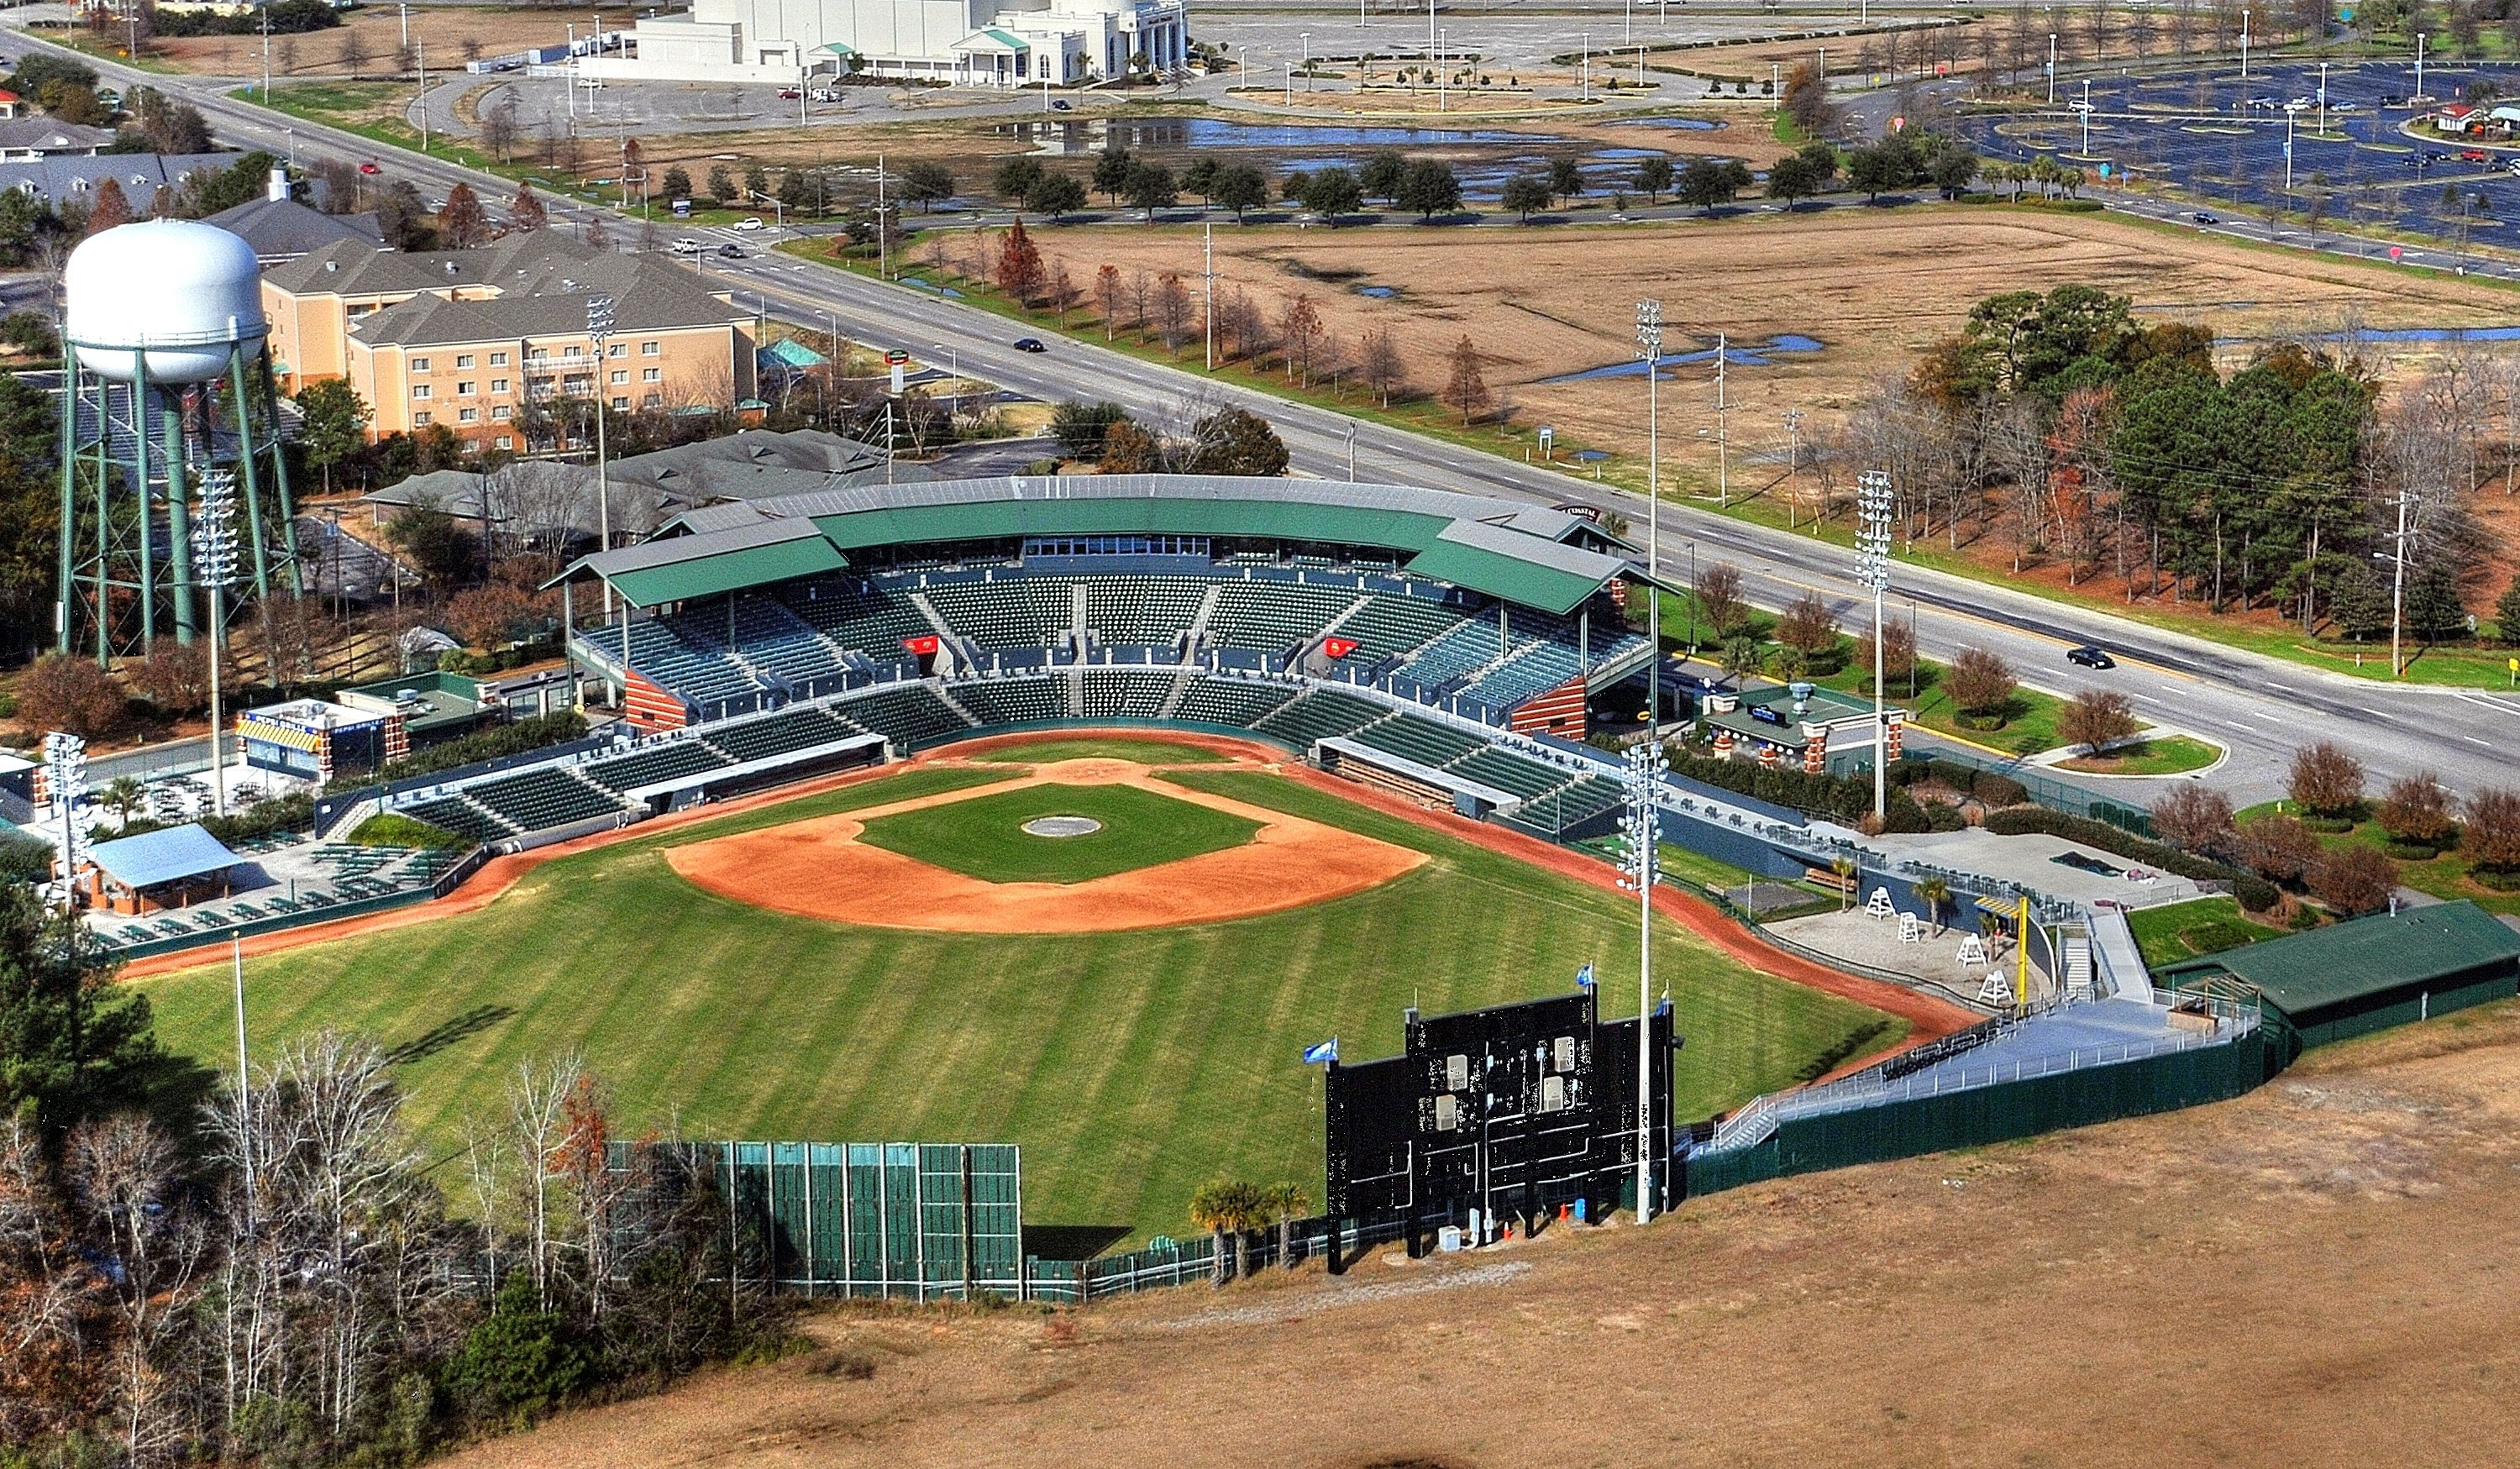 The Myrtle Beach Pelicans Field! A great place to catch a